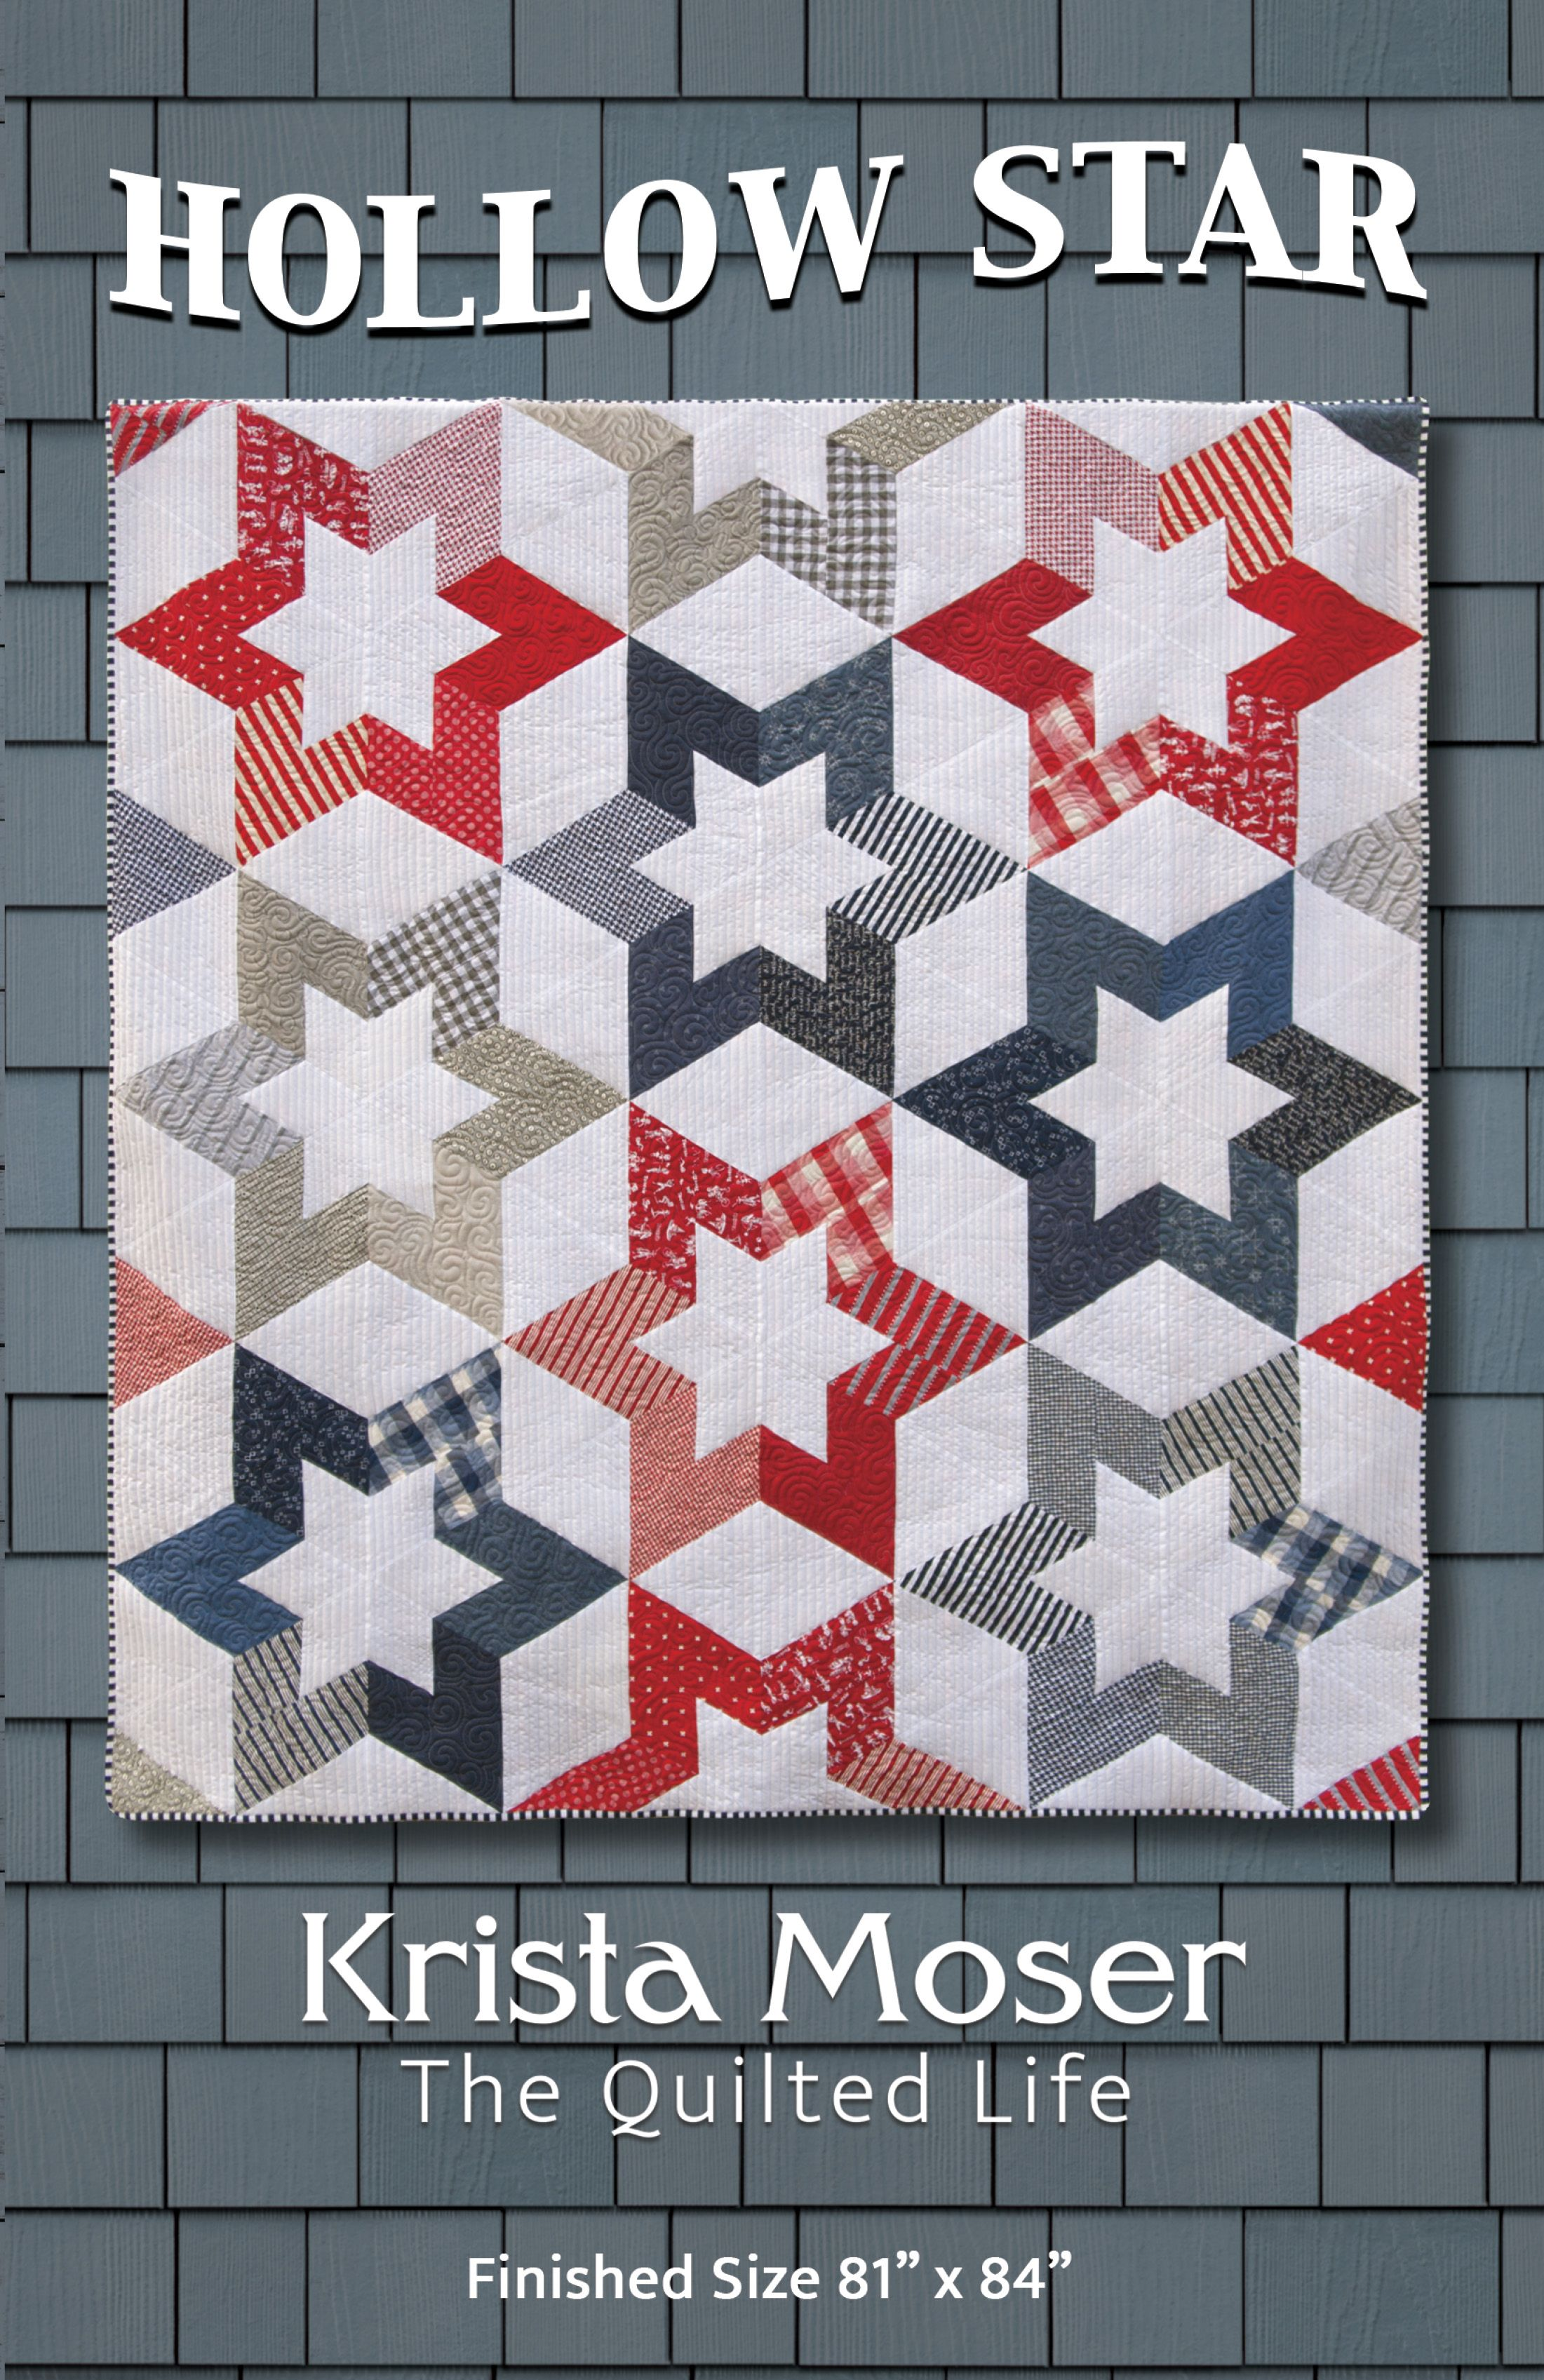 Moderne Quilts Krista Moser The Quilted Life Hollow Star Quilty Sewy Stuff